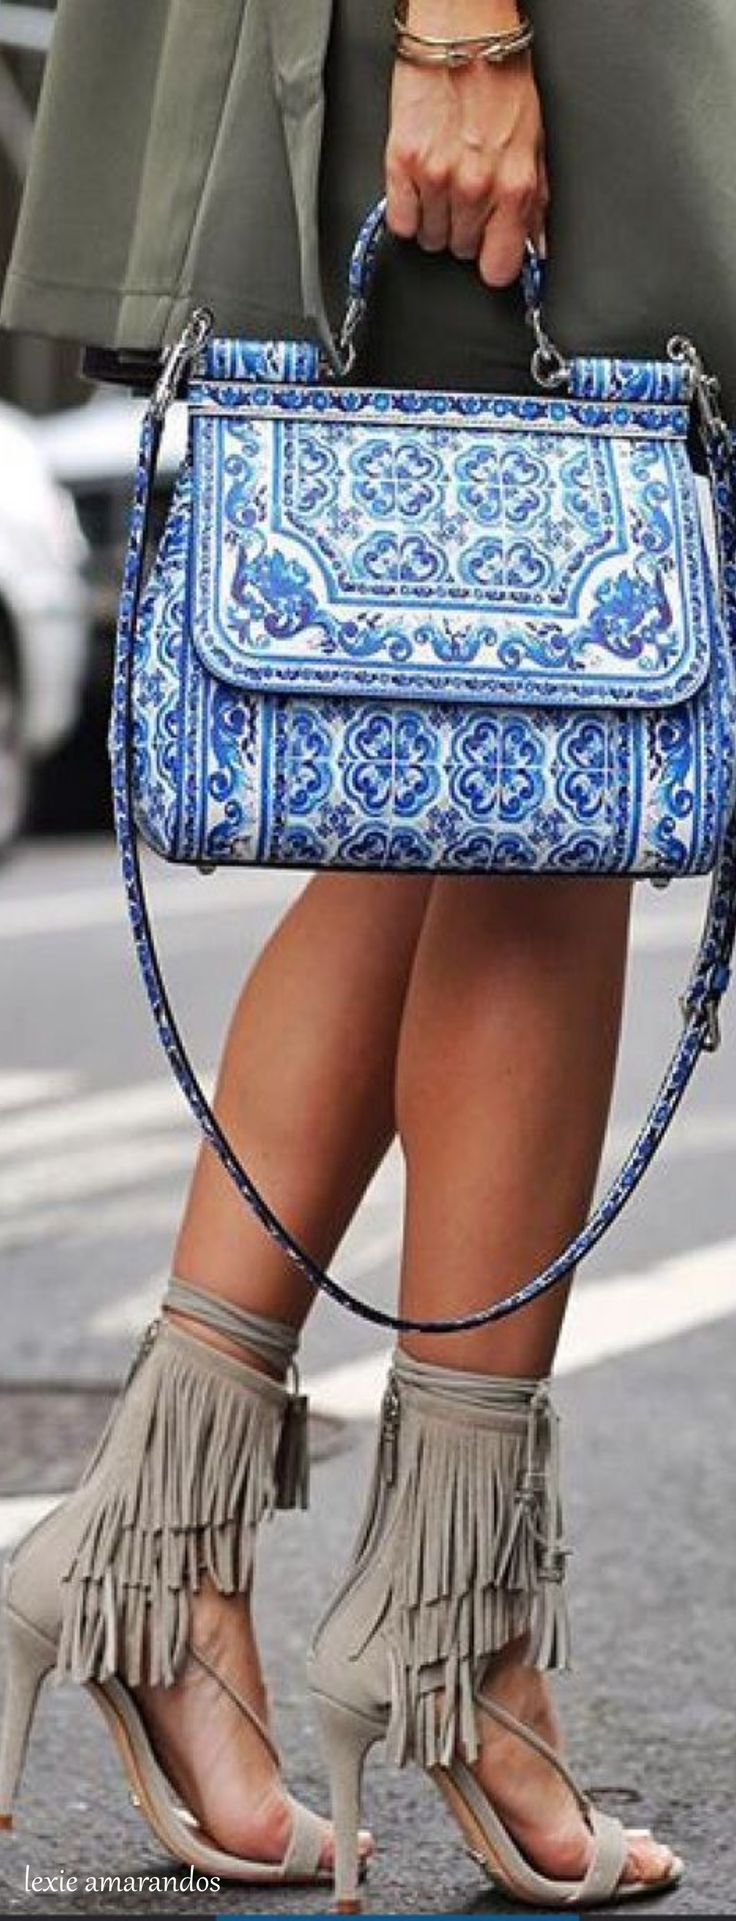 Find More at => http://feedproxy.google.com/~r/amazingoutfits/~3/a_FFQkbrnoo/AmazingOutfits.page